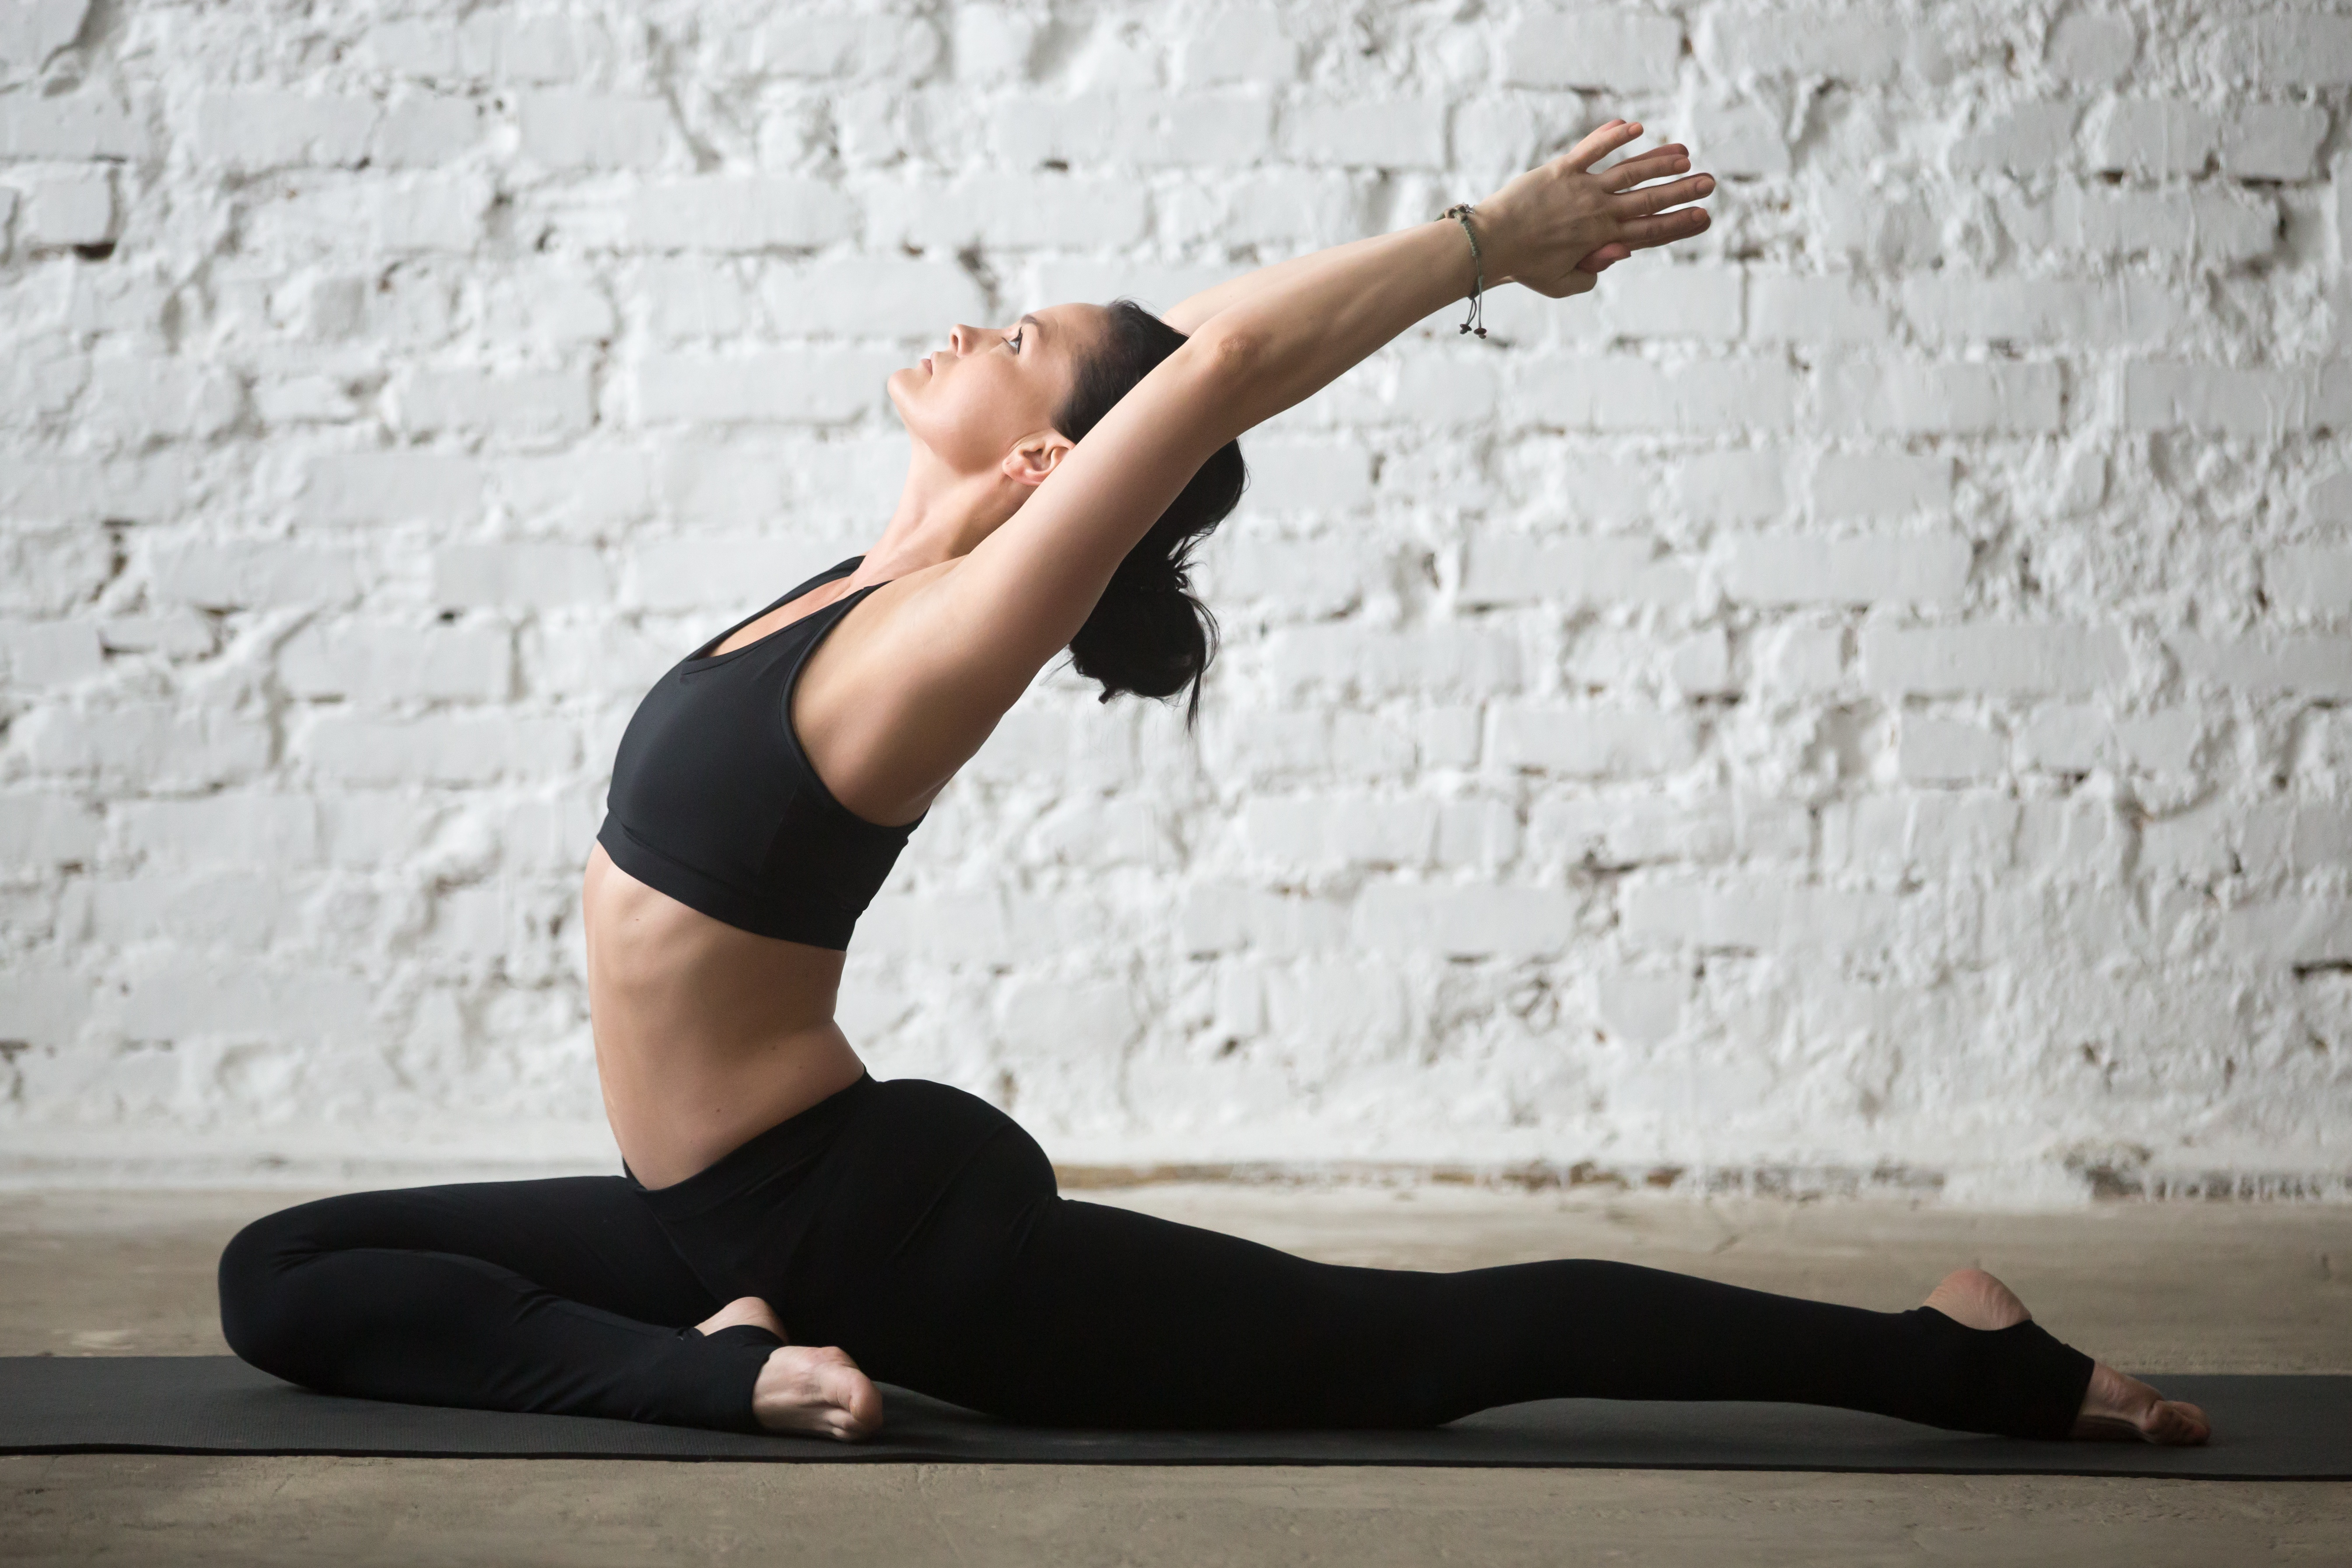 Yoga Poses to try for Back Pain - Pigeon Pose